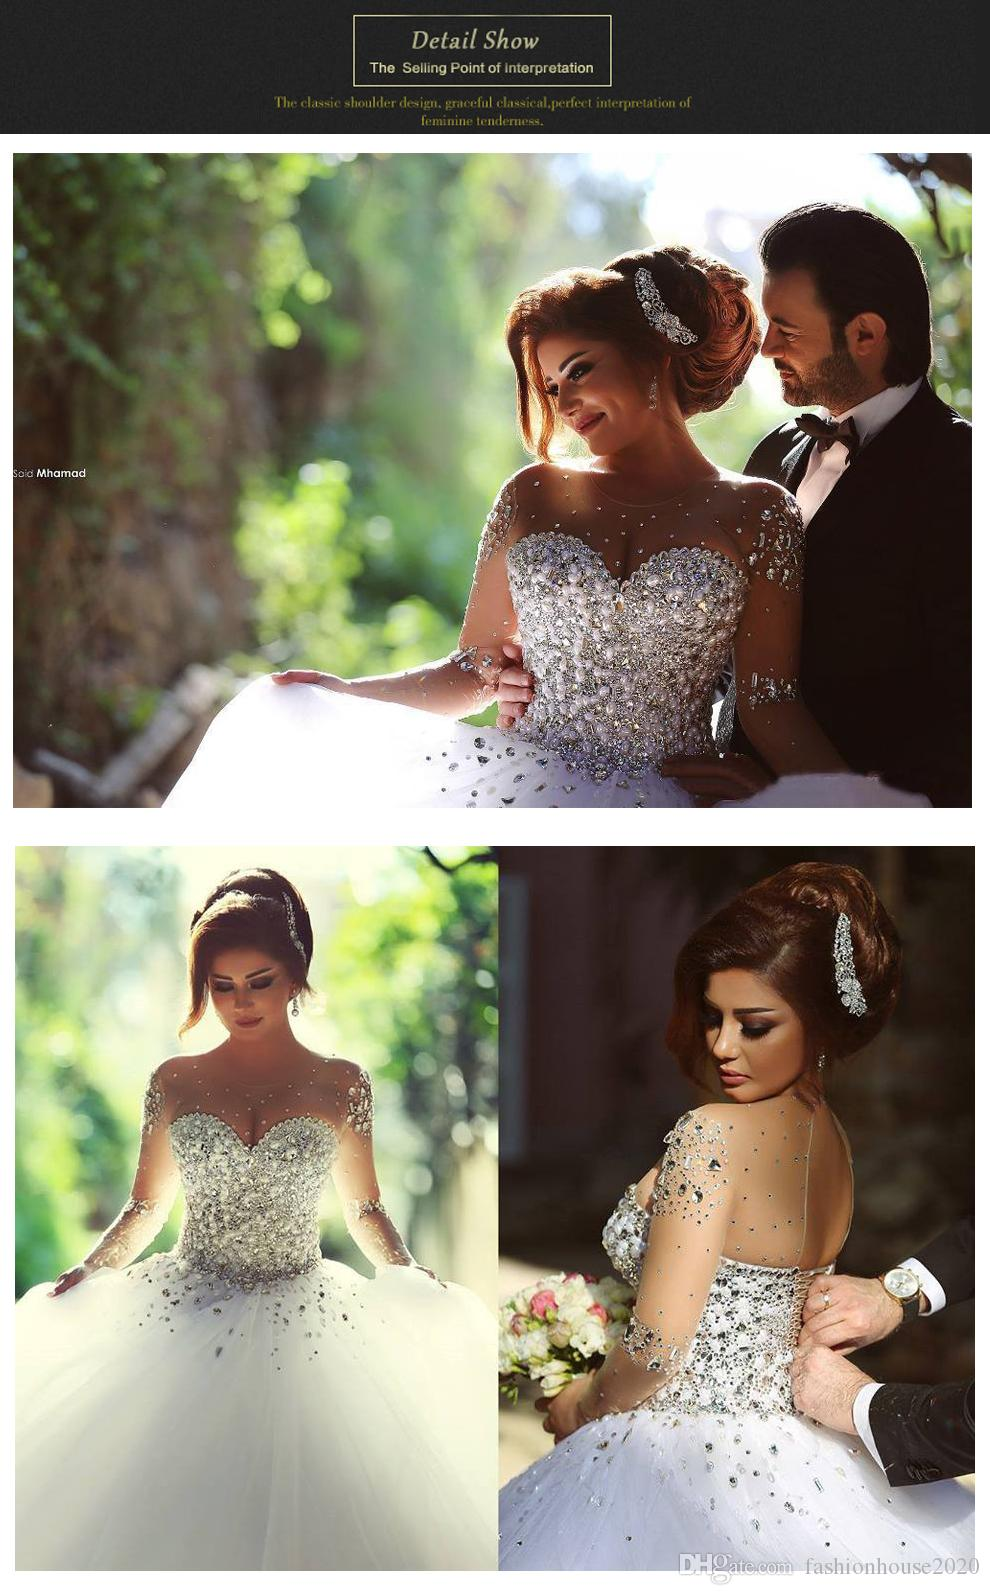 2020 Luxury Pearl Crystal Wedding Dresses Sheer Illusion Bodice Tulle Long Sleeve Wedding Bridal Gowns Plus Size Ball Gown Bride Dresses